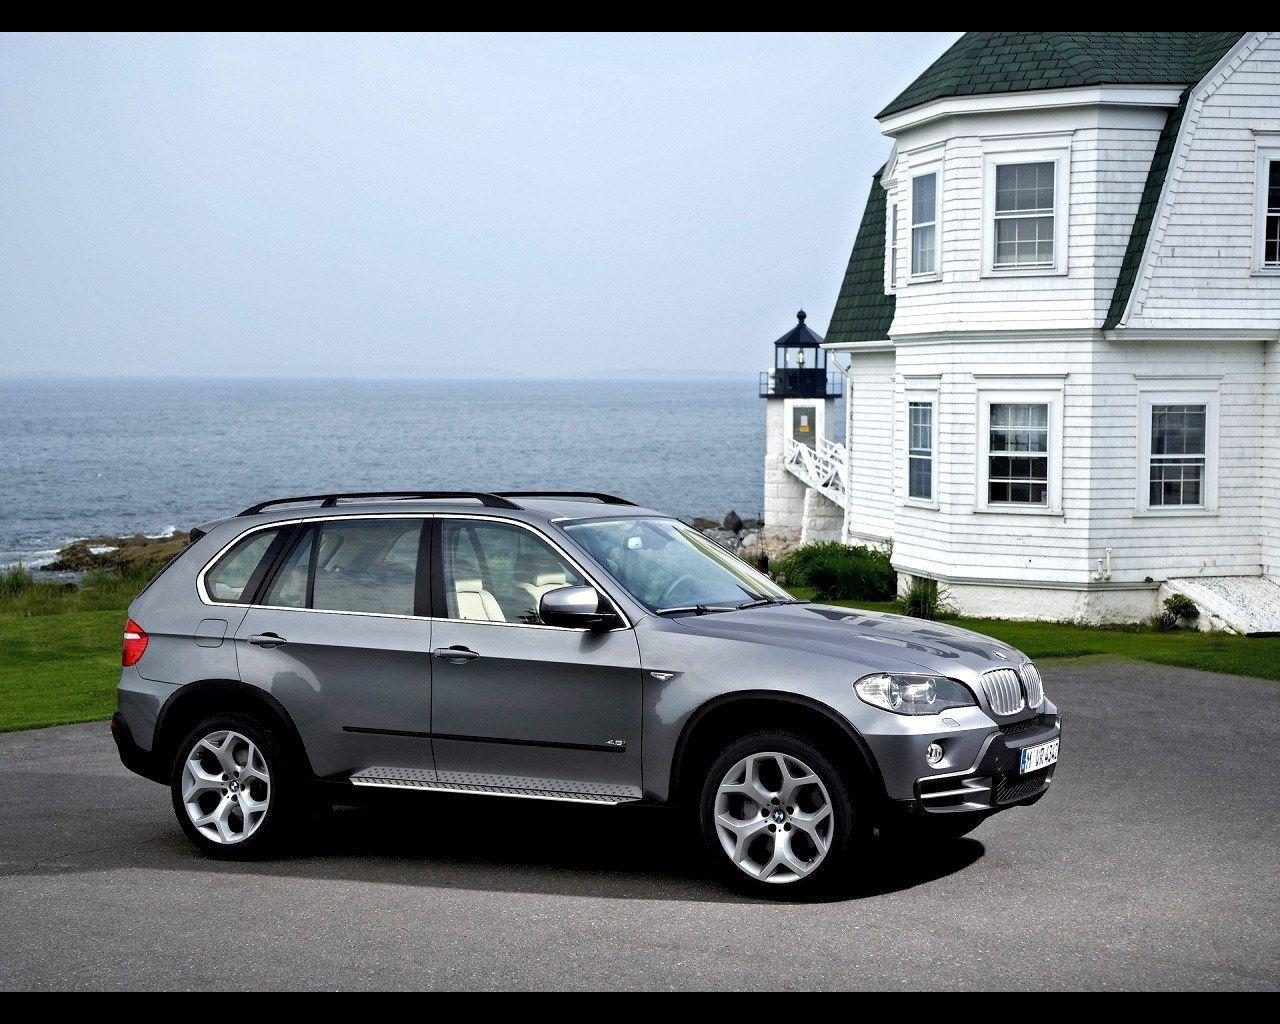 2007 BMW X5 Wallpaper 03 - 1280x1024